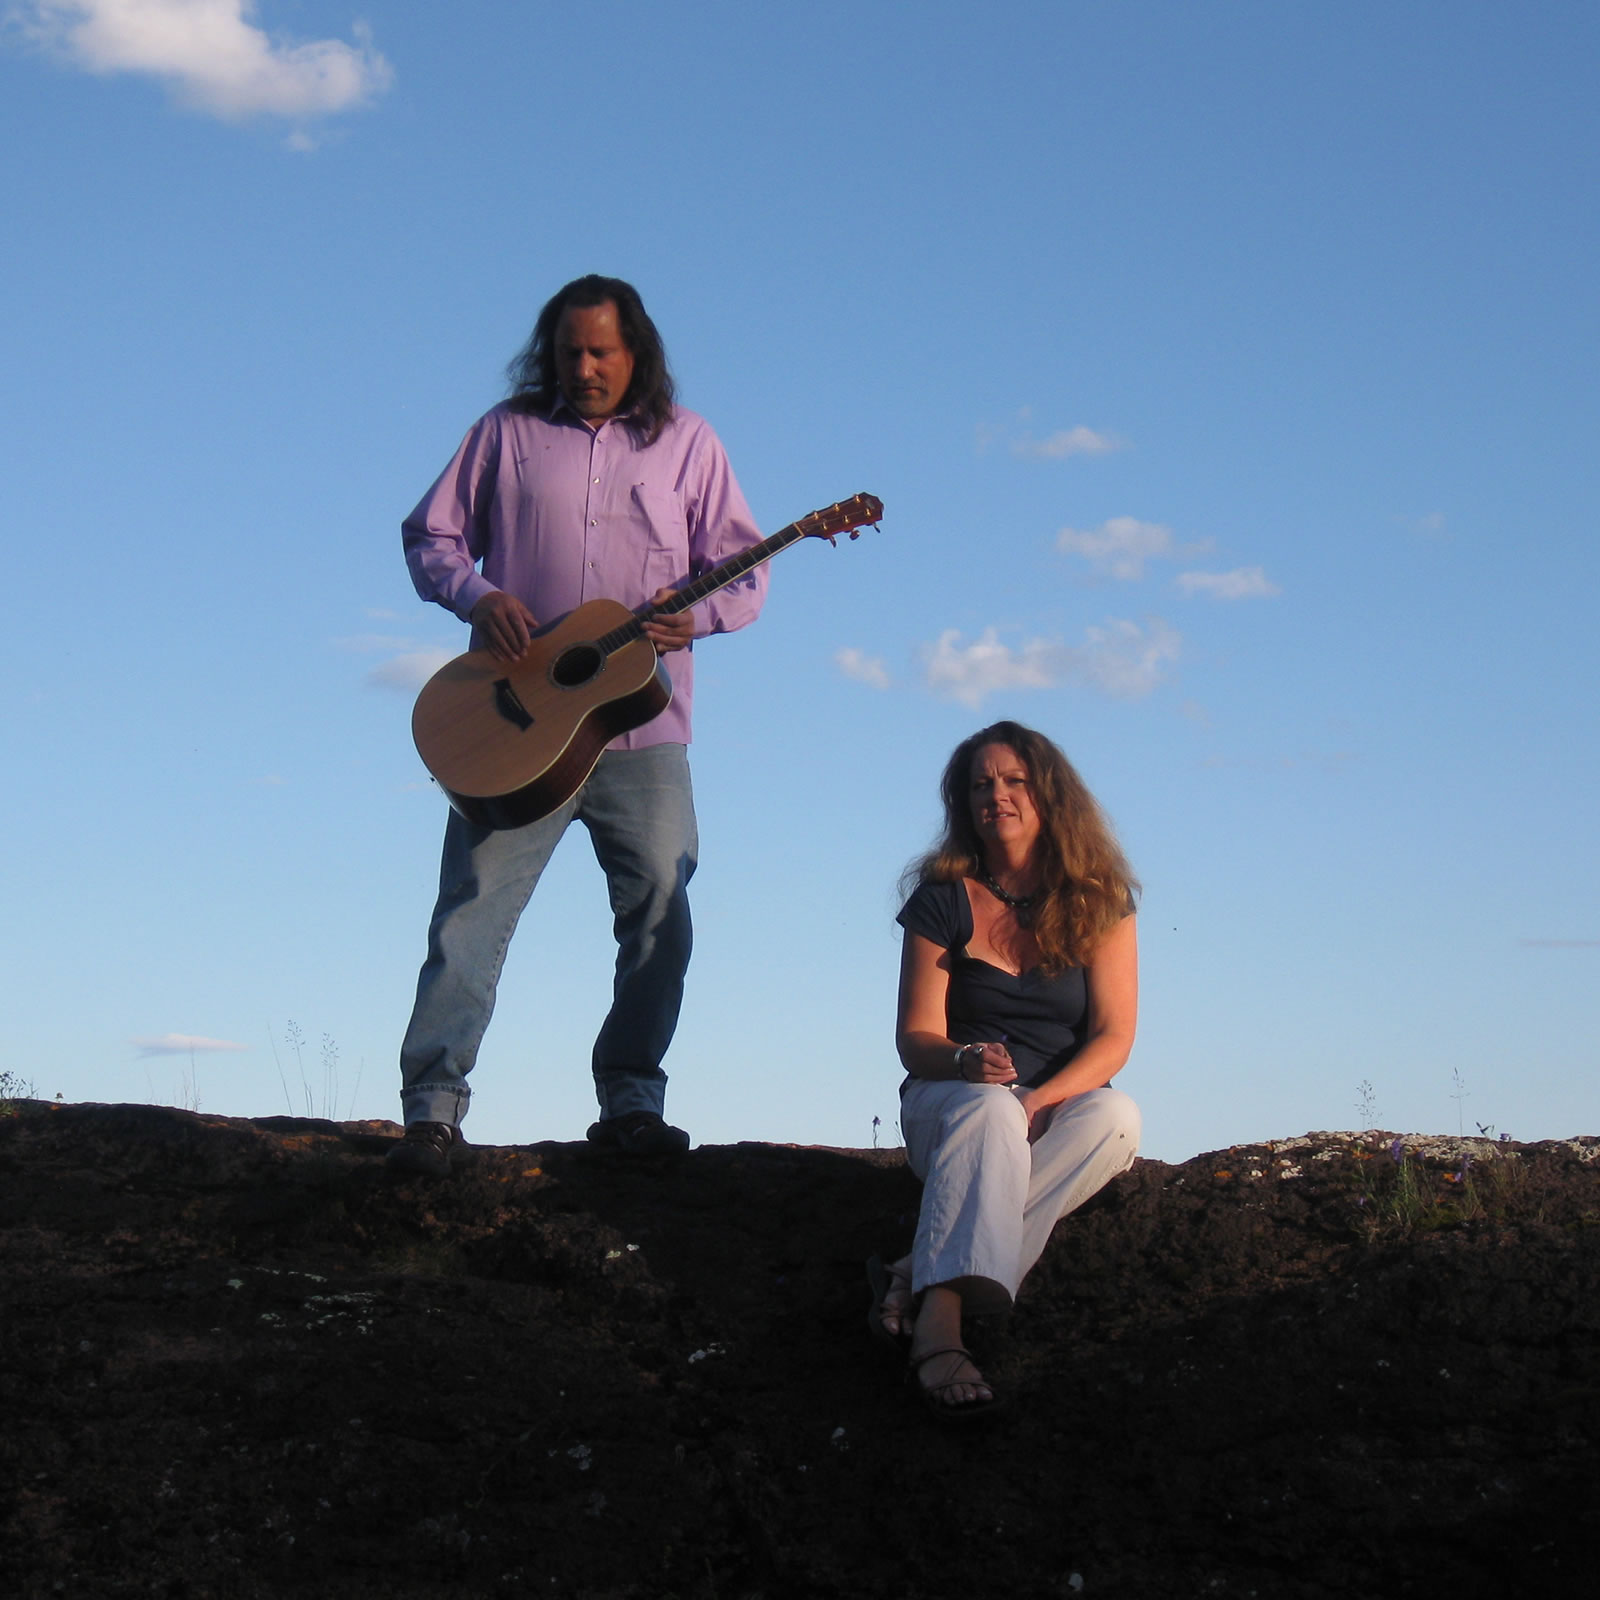 Briand Morrison & Roxann Berglund make holiday music for your listening pleasure